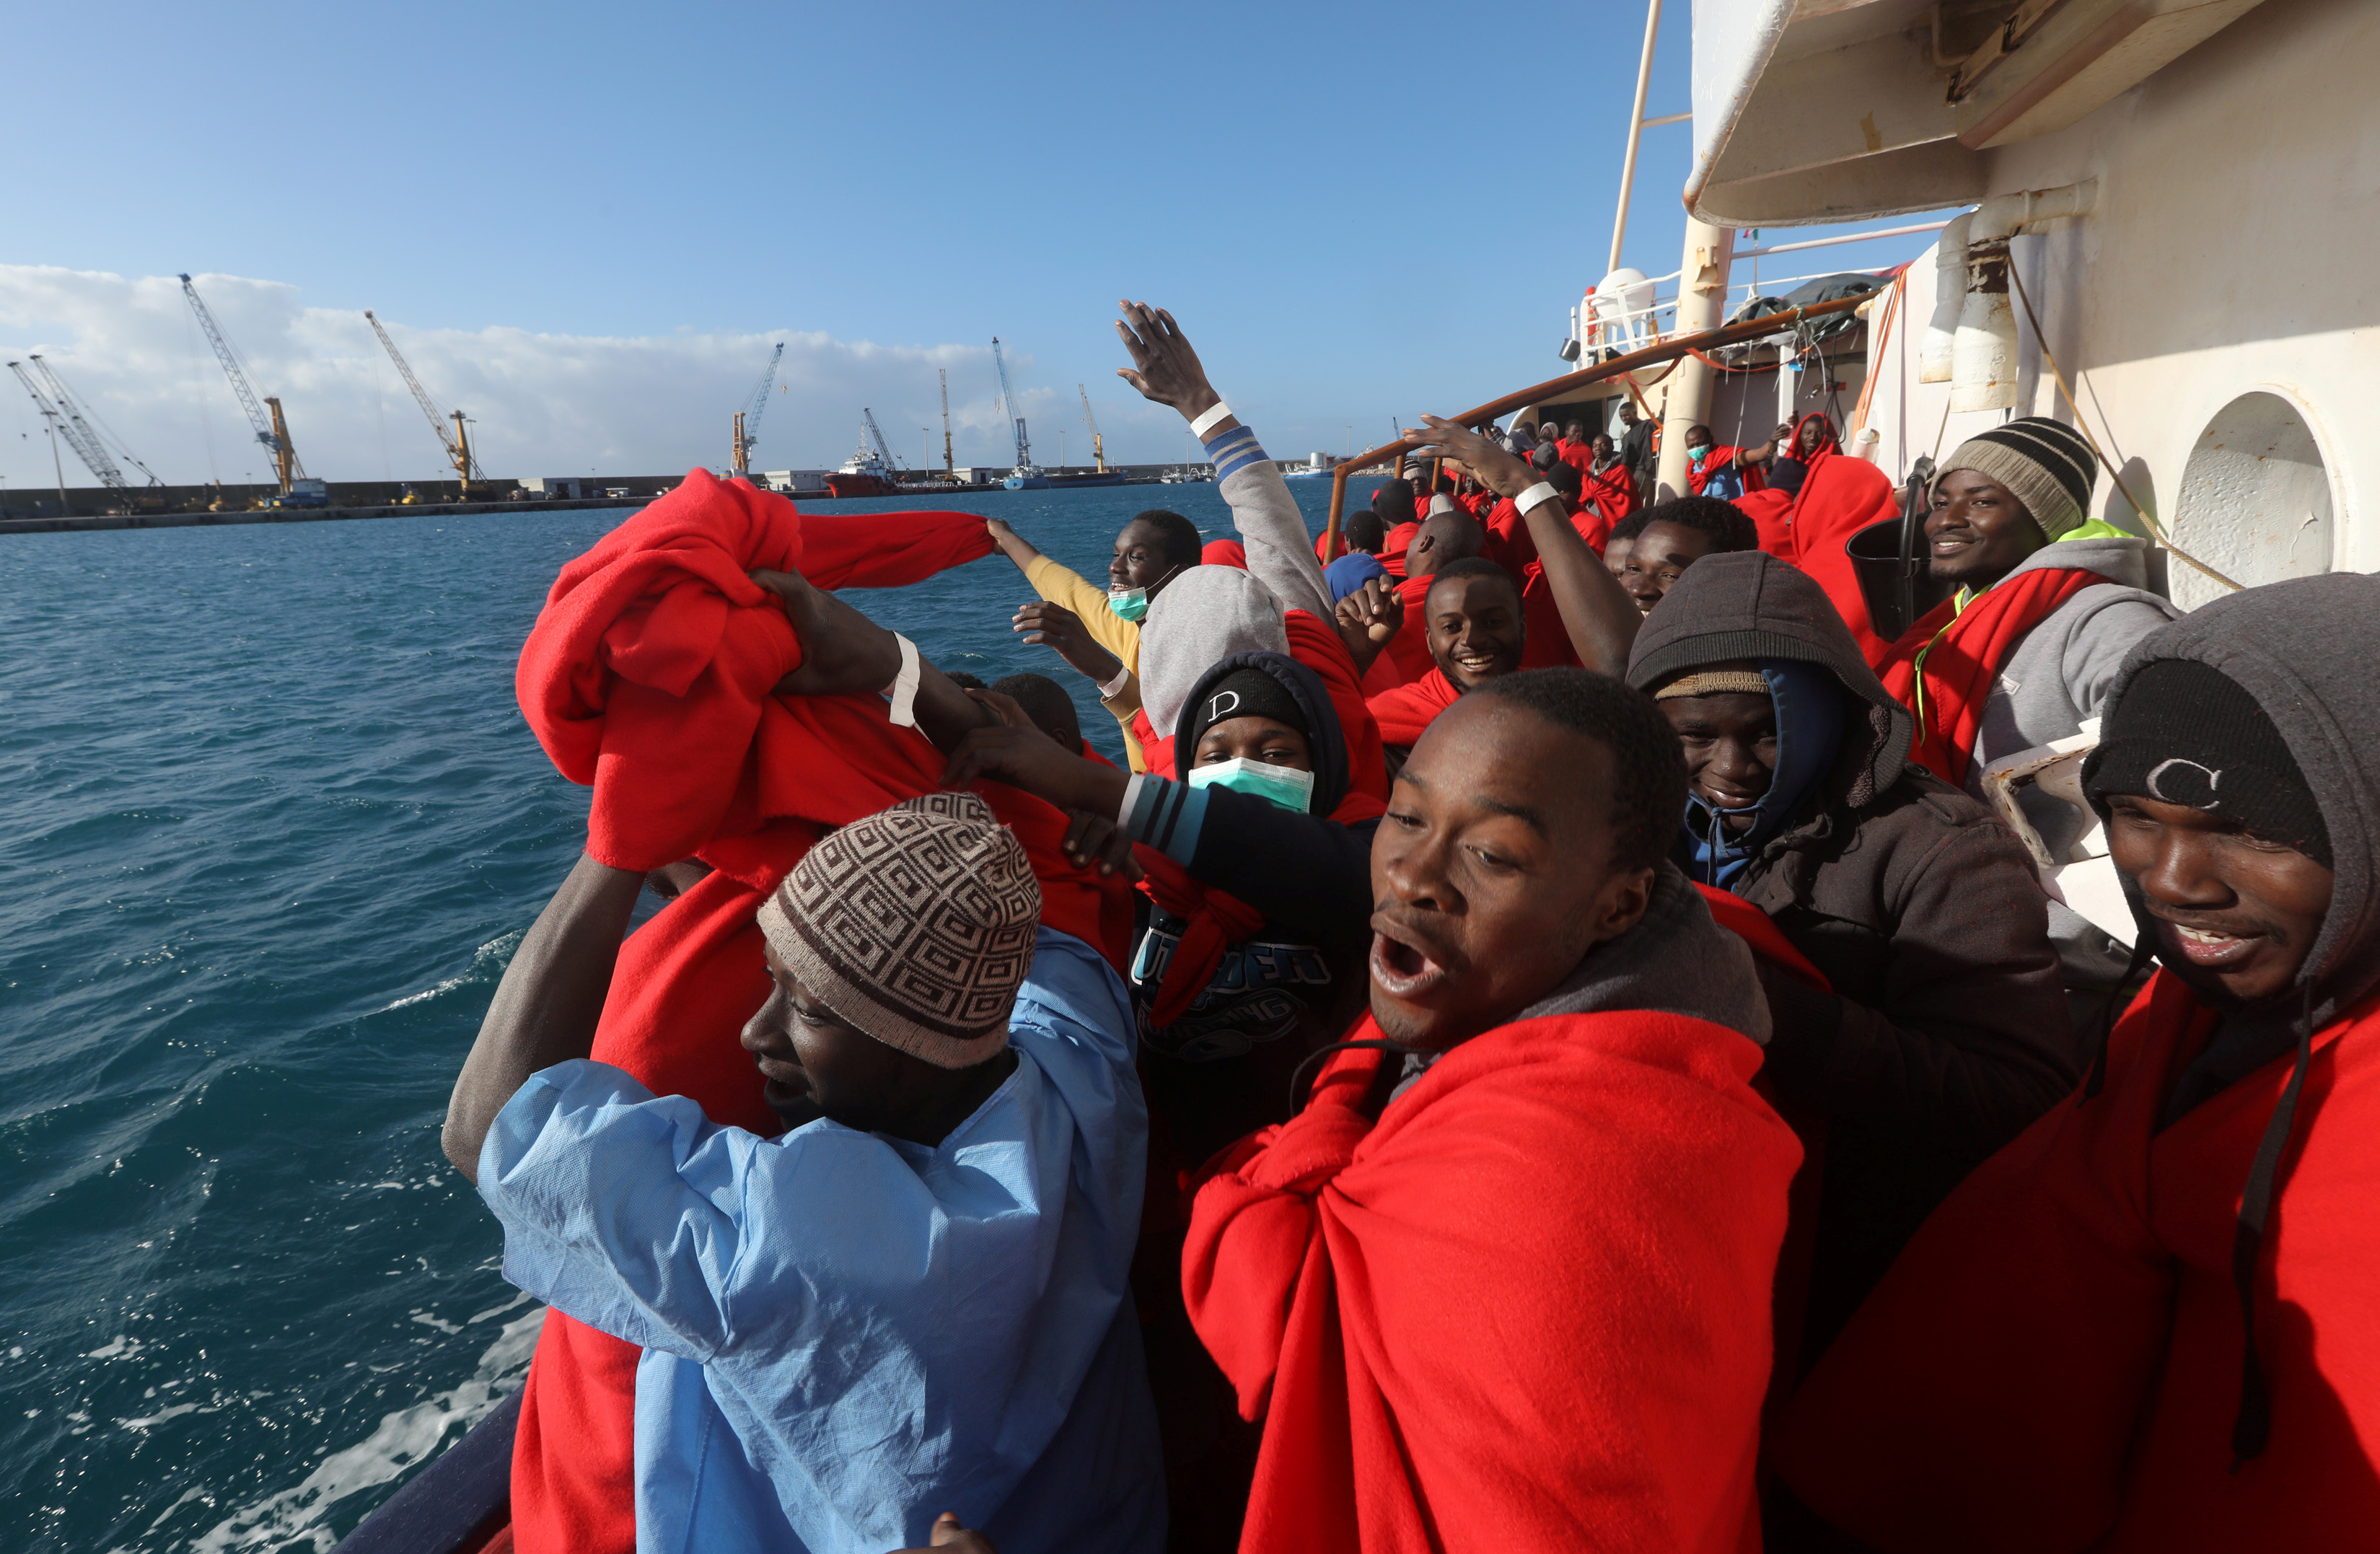 Migrants cheer as they approach the port in Sicily after their harrowing journey. Photo by Yannis Behrakis/Reuters